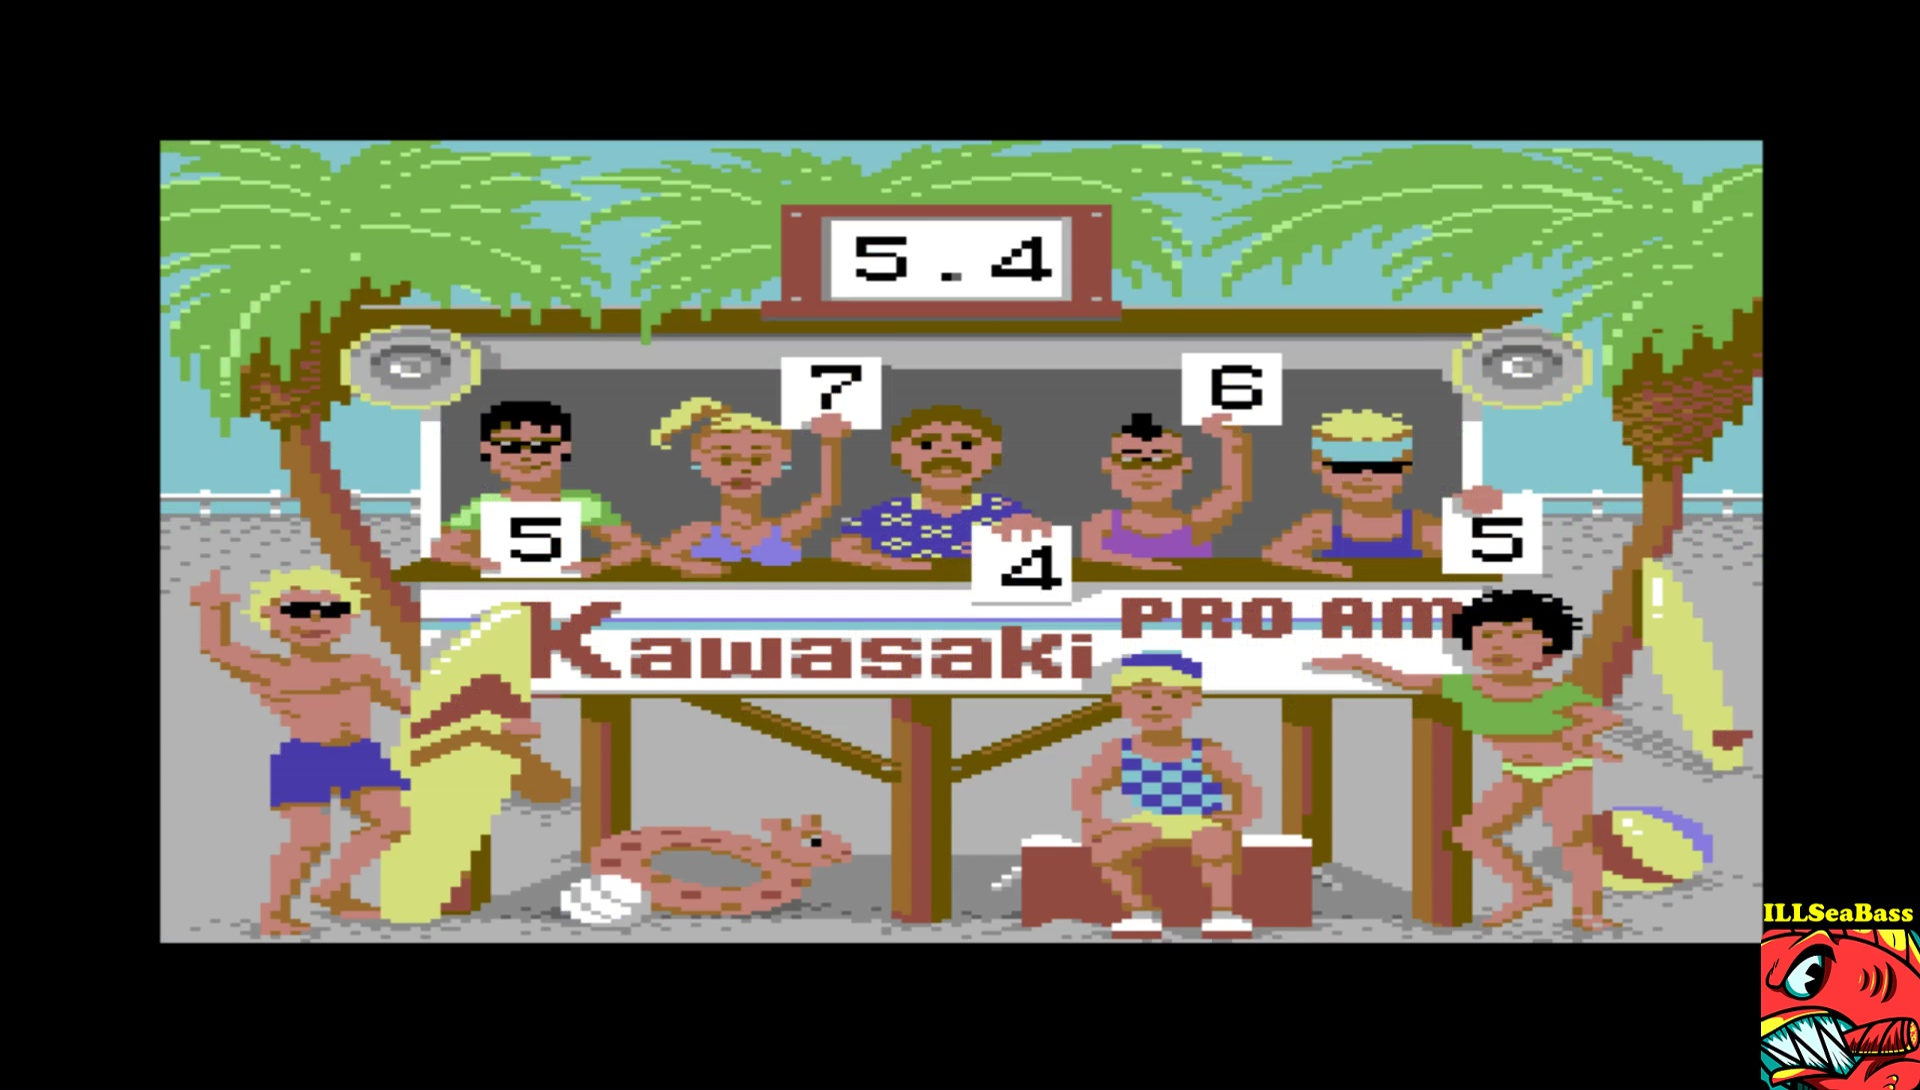 ILLSeaBass: California Games: Surfing (Commodore 64 Emulated) 54 points on 2017-04-01 16:52:10